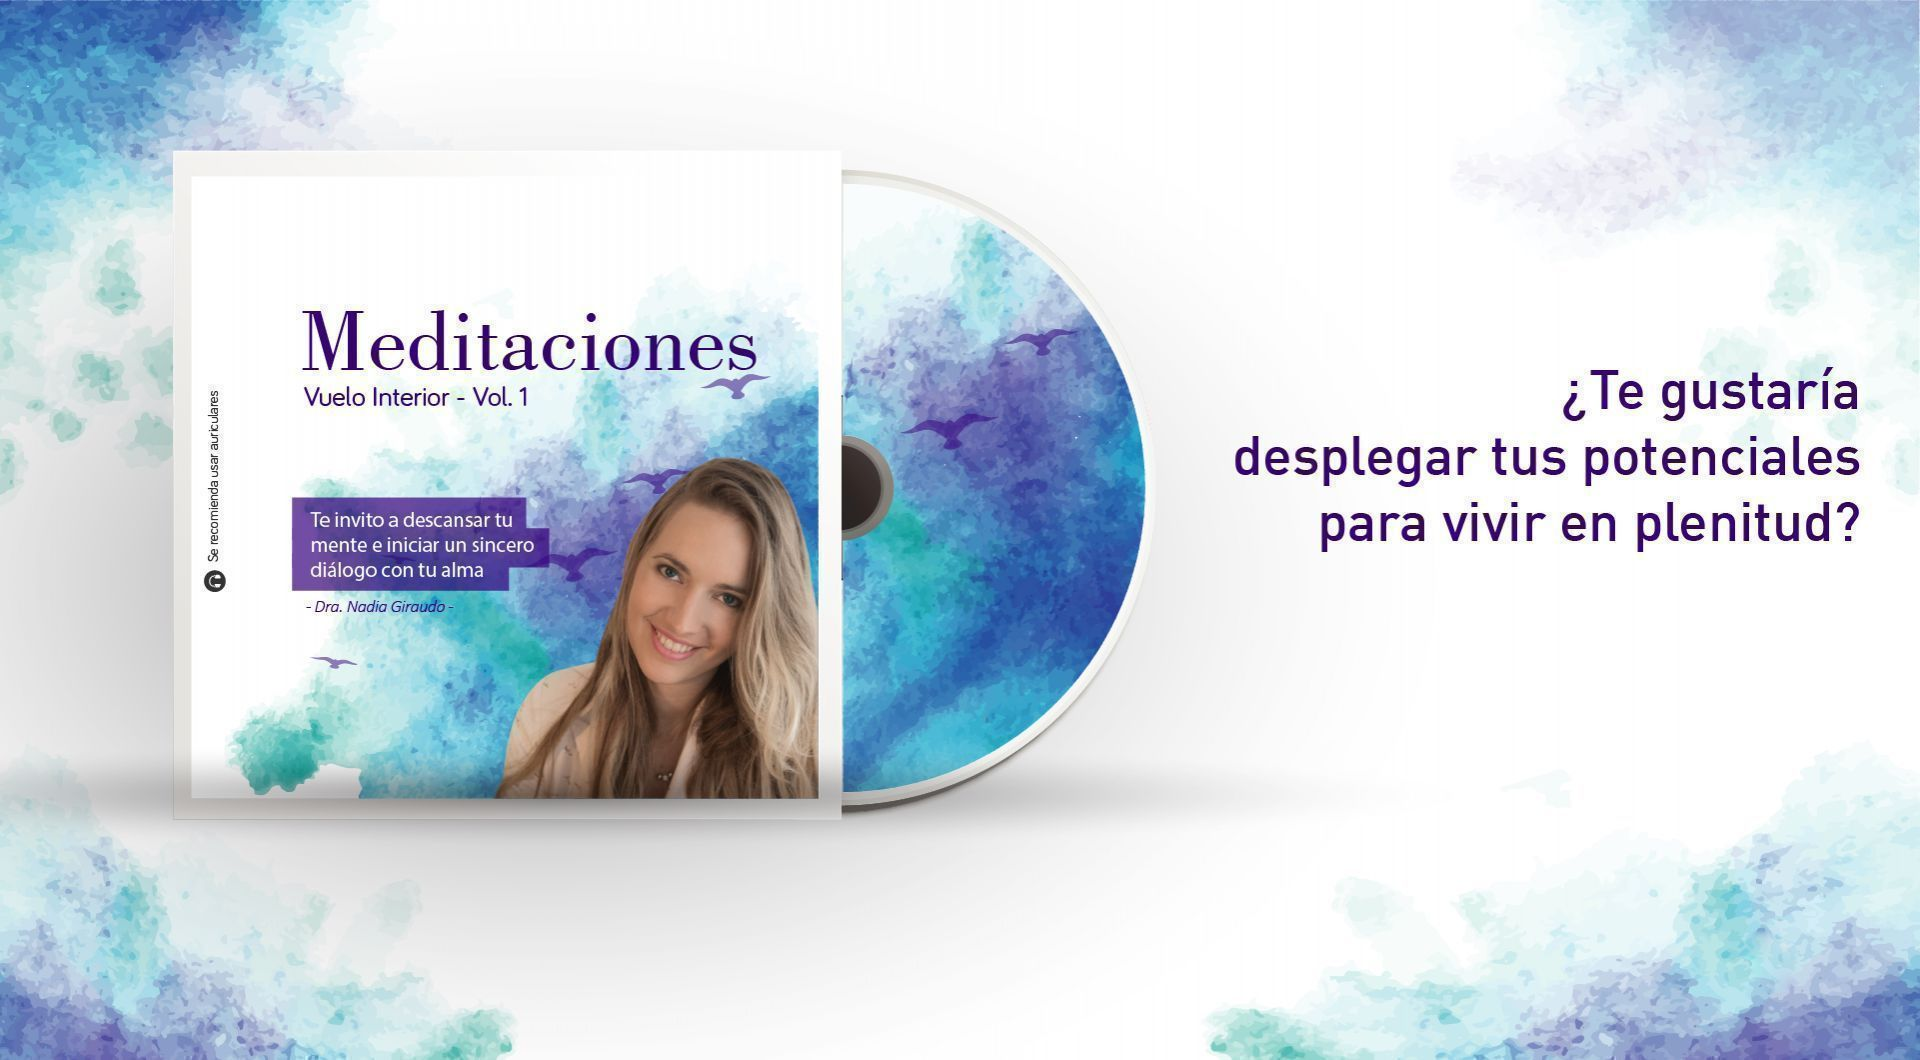 CD de Meditaciones - vuelo interior, volumen 1